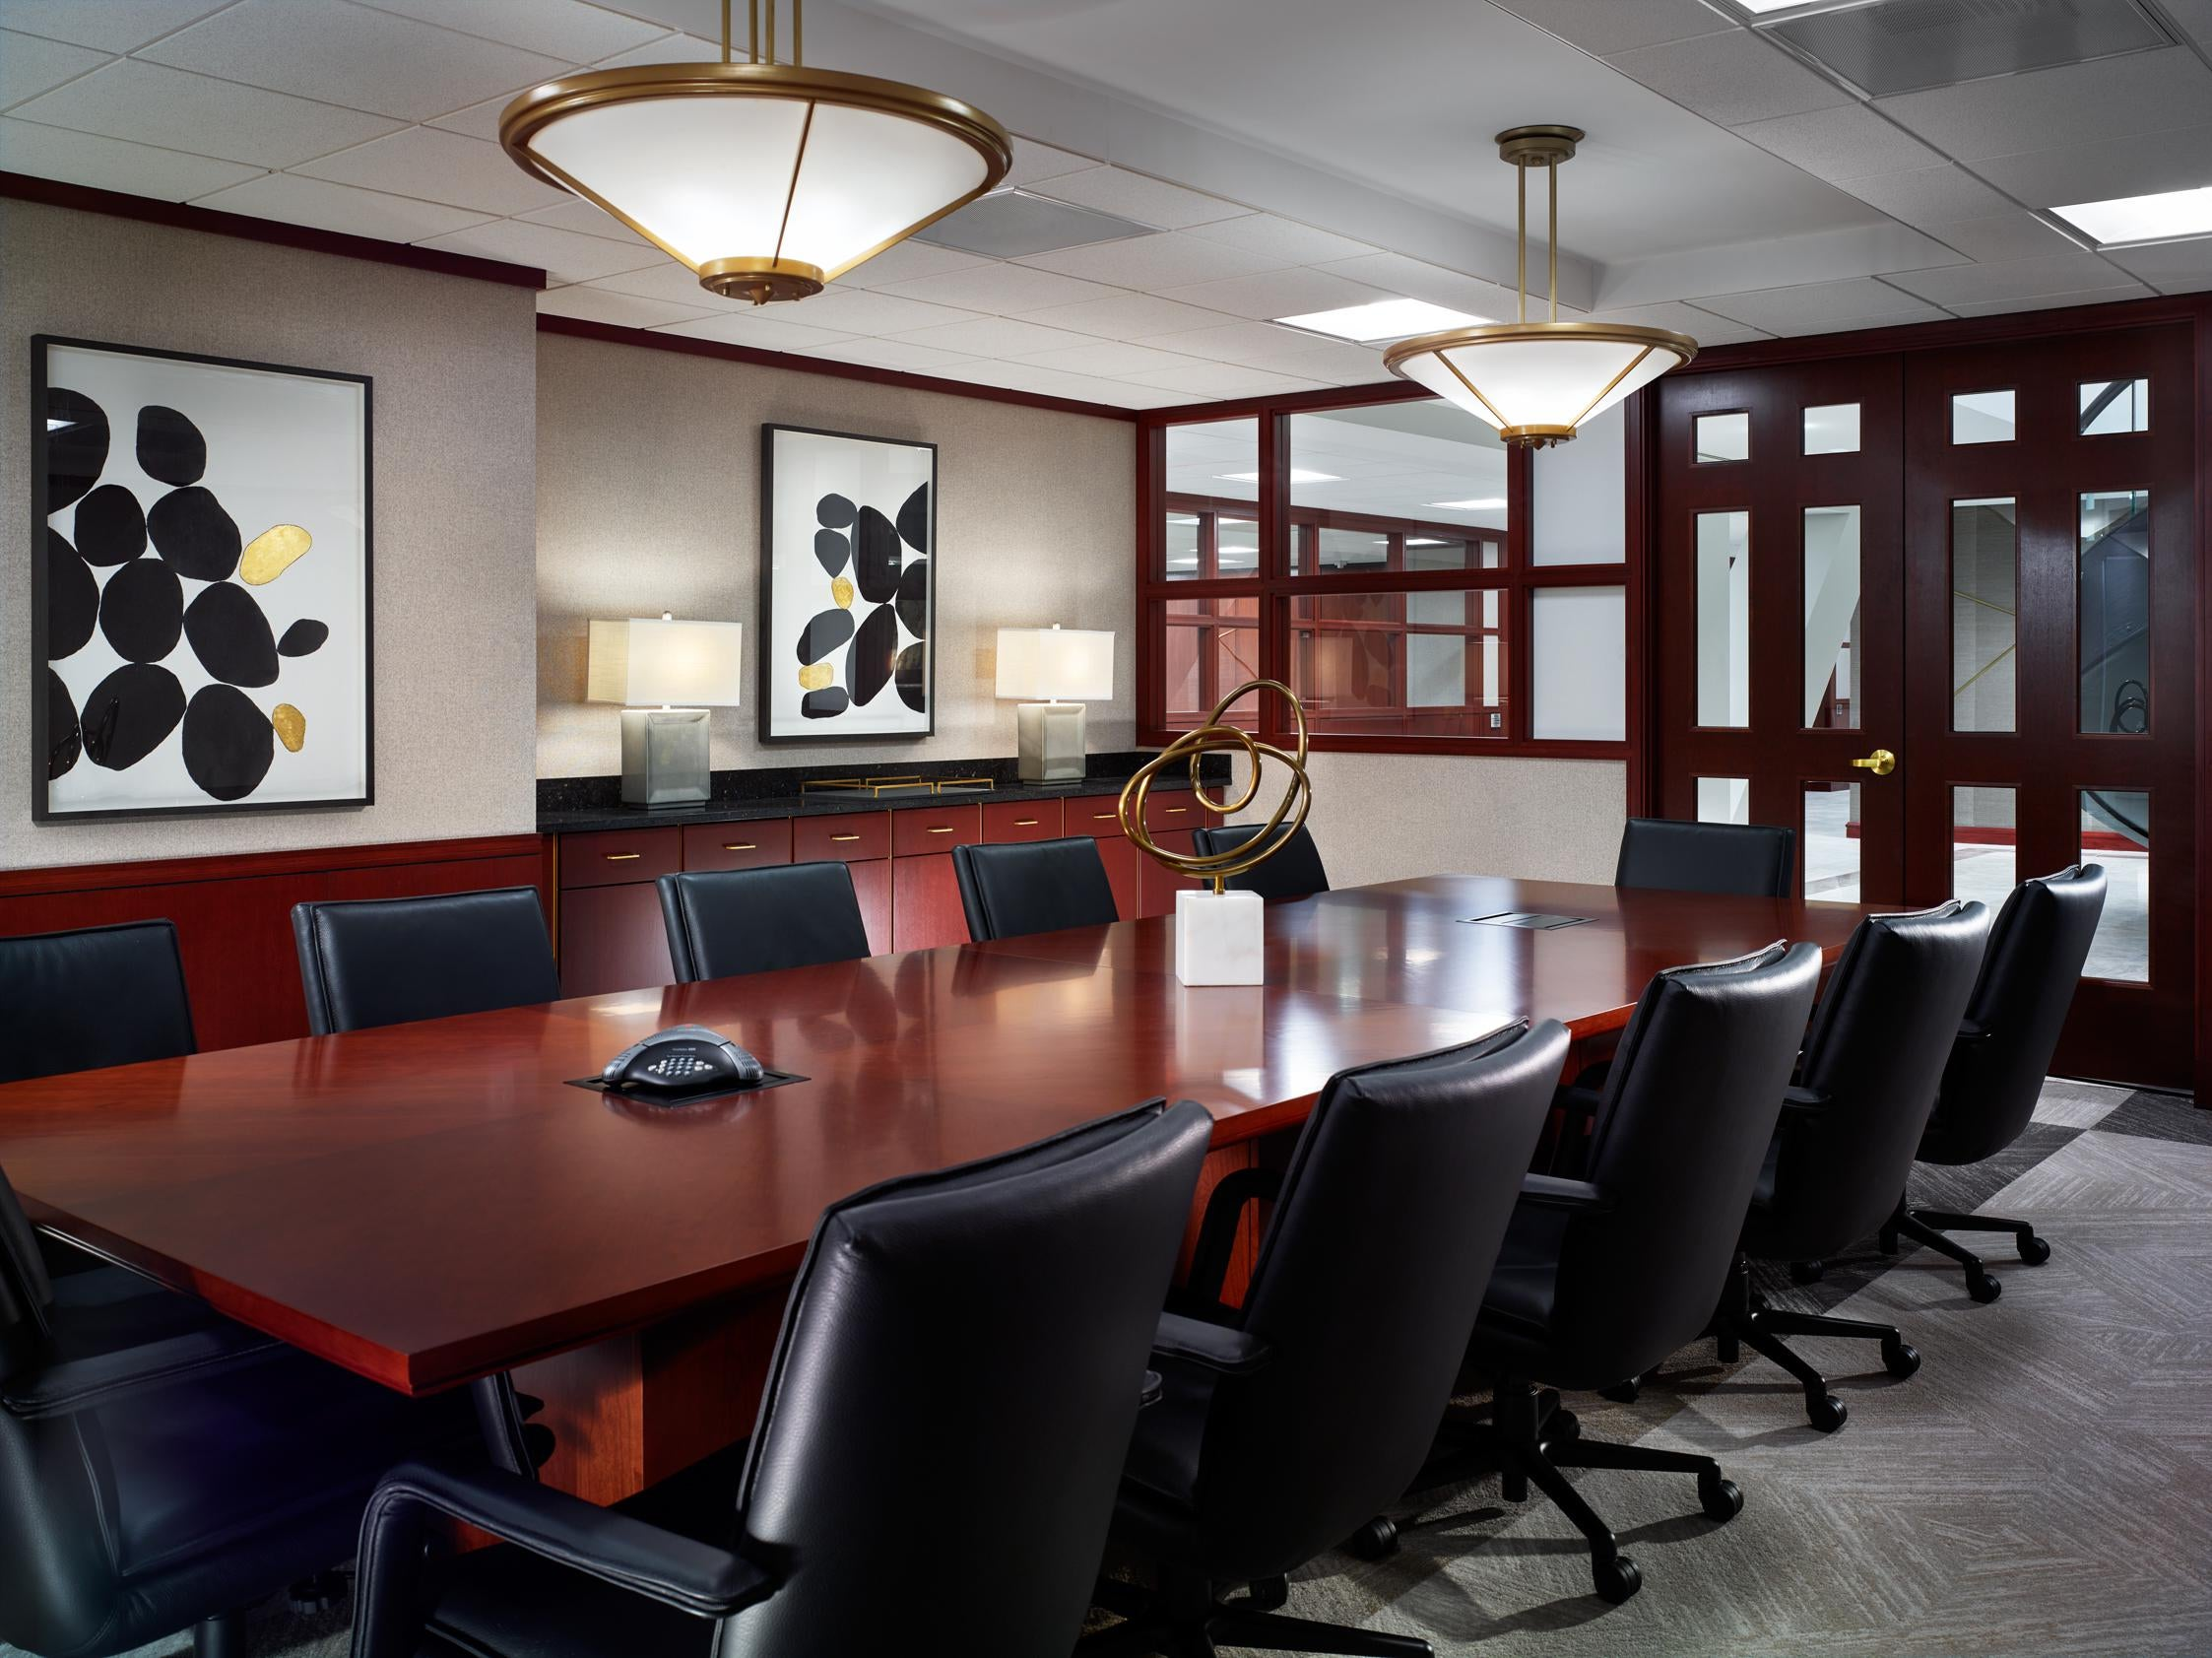 Pittsburgh Law Offices Medium Sized Conference Room. LSM Interior Design